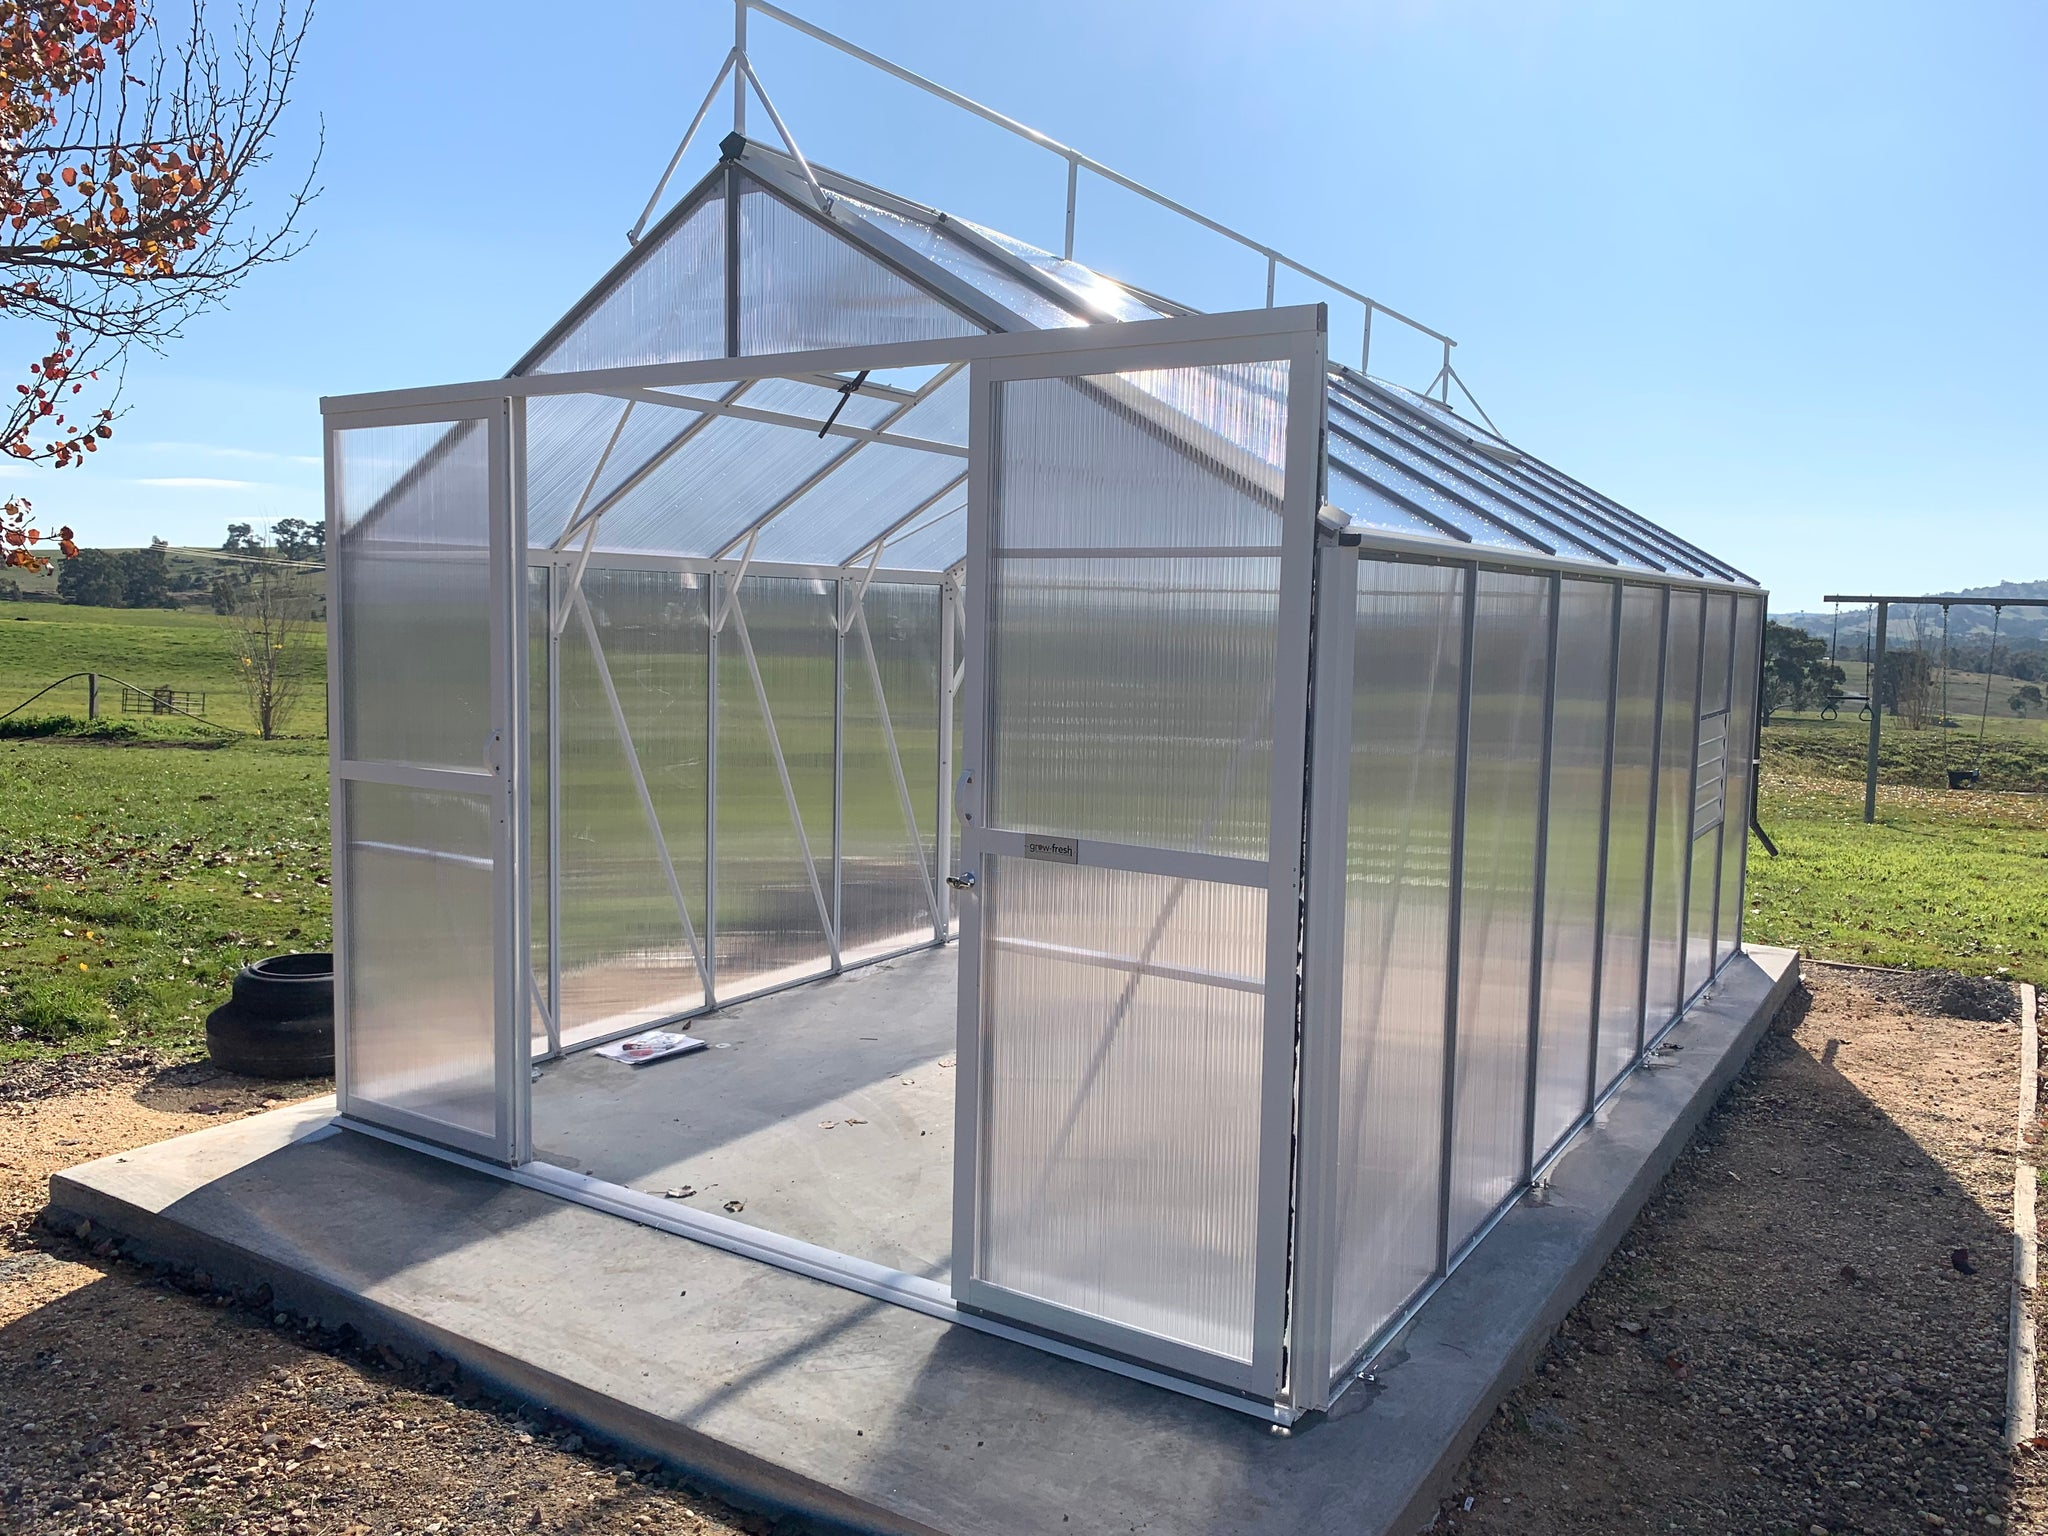 Windsor Junior 5200 Greenhouse- 5.2Lx3.0Wx2.6Hm (17x9.7x8.5ft)